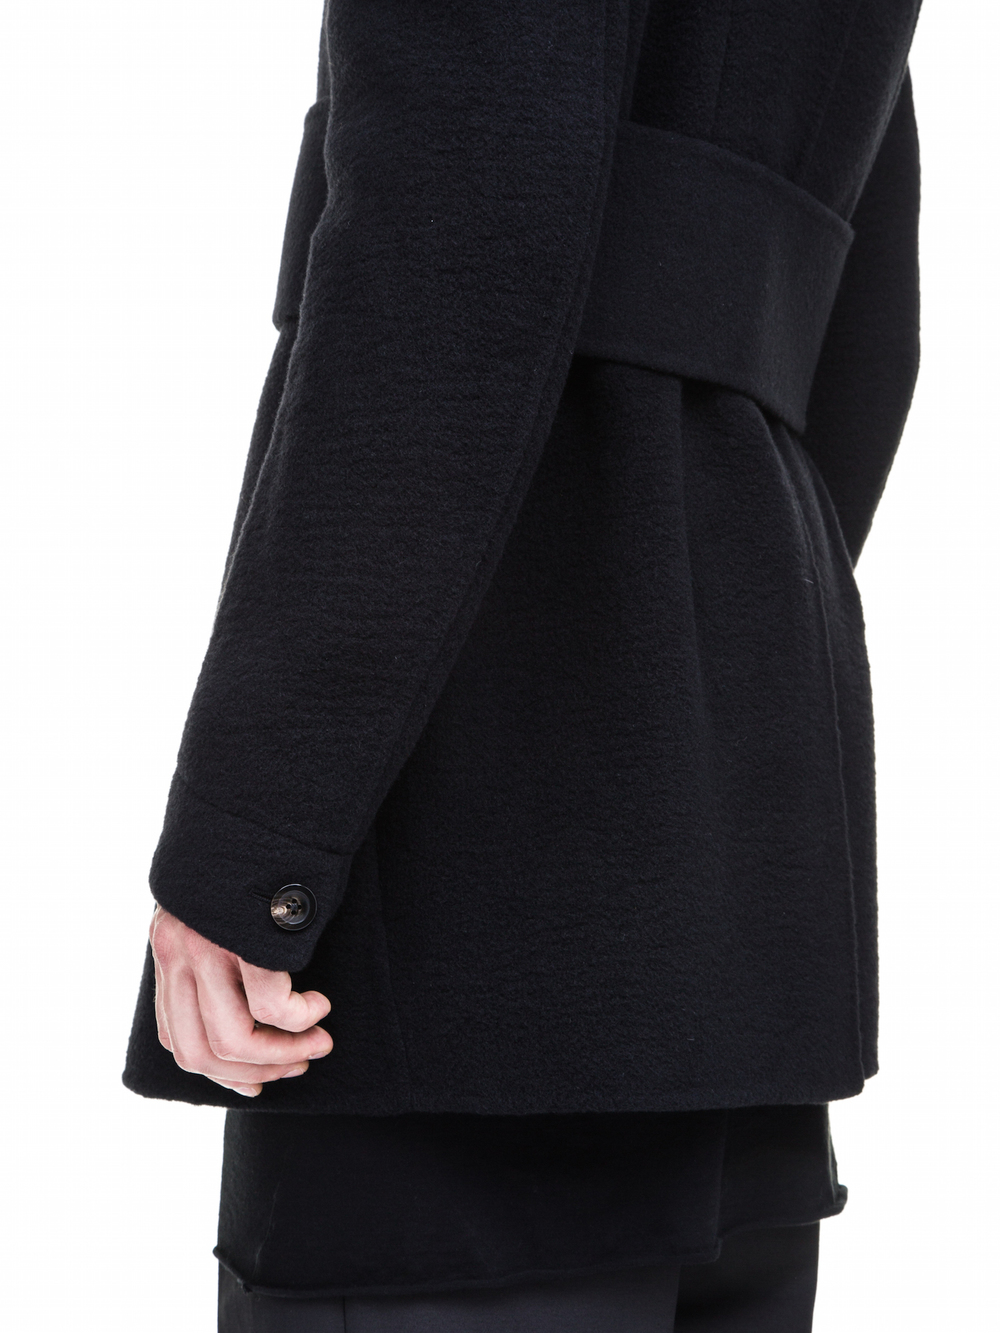 RICK OWENS PEACOAT IN BLACK HEAVY CASHMERE